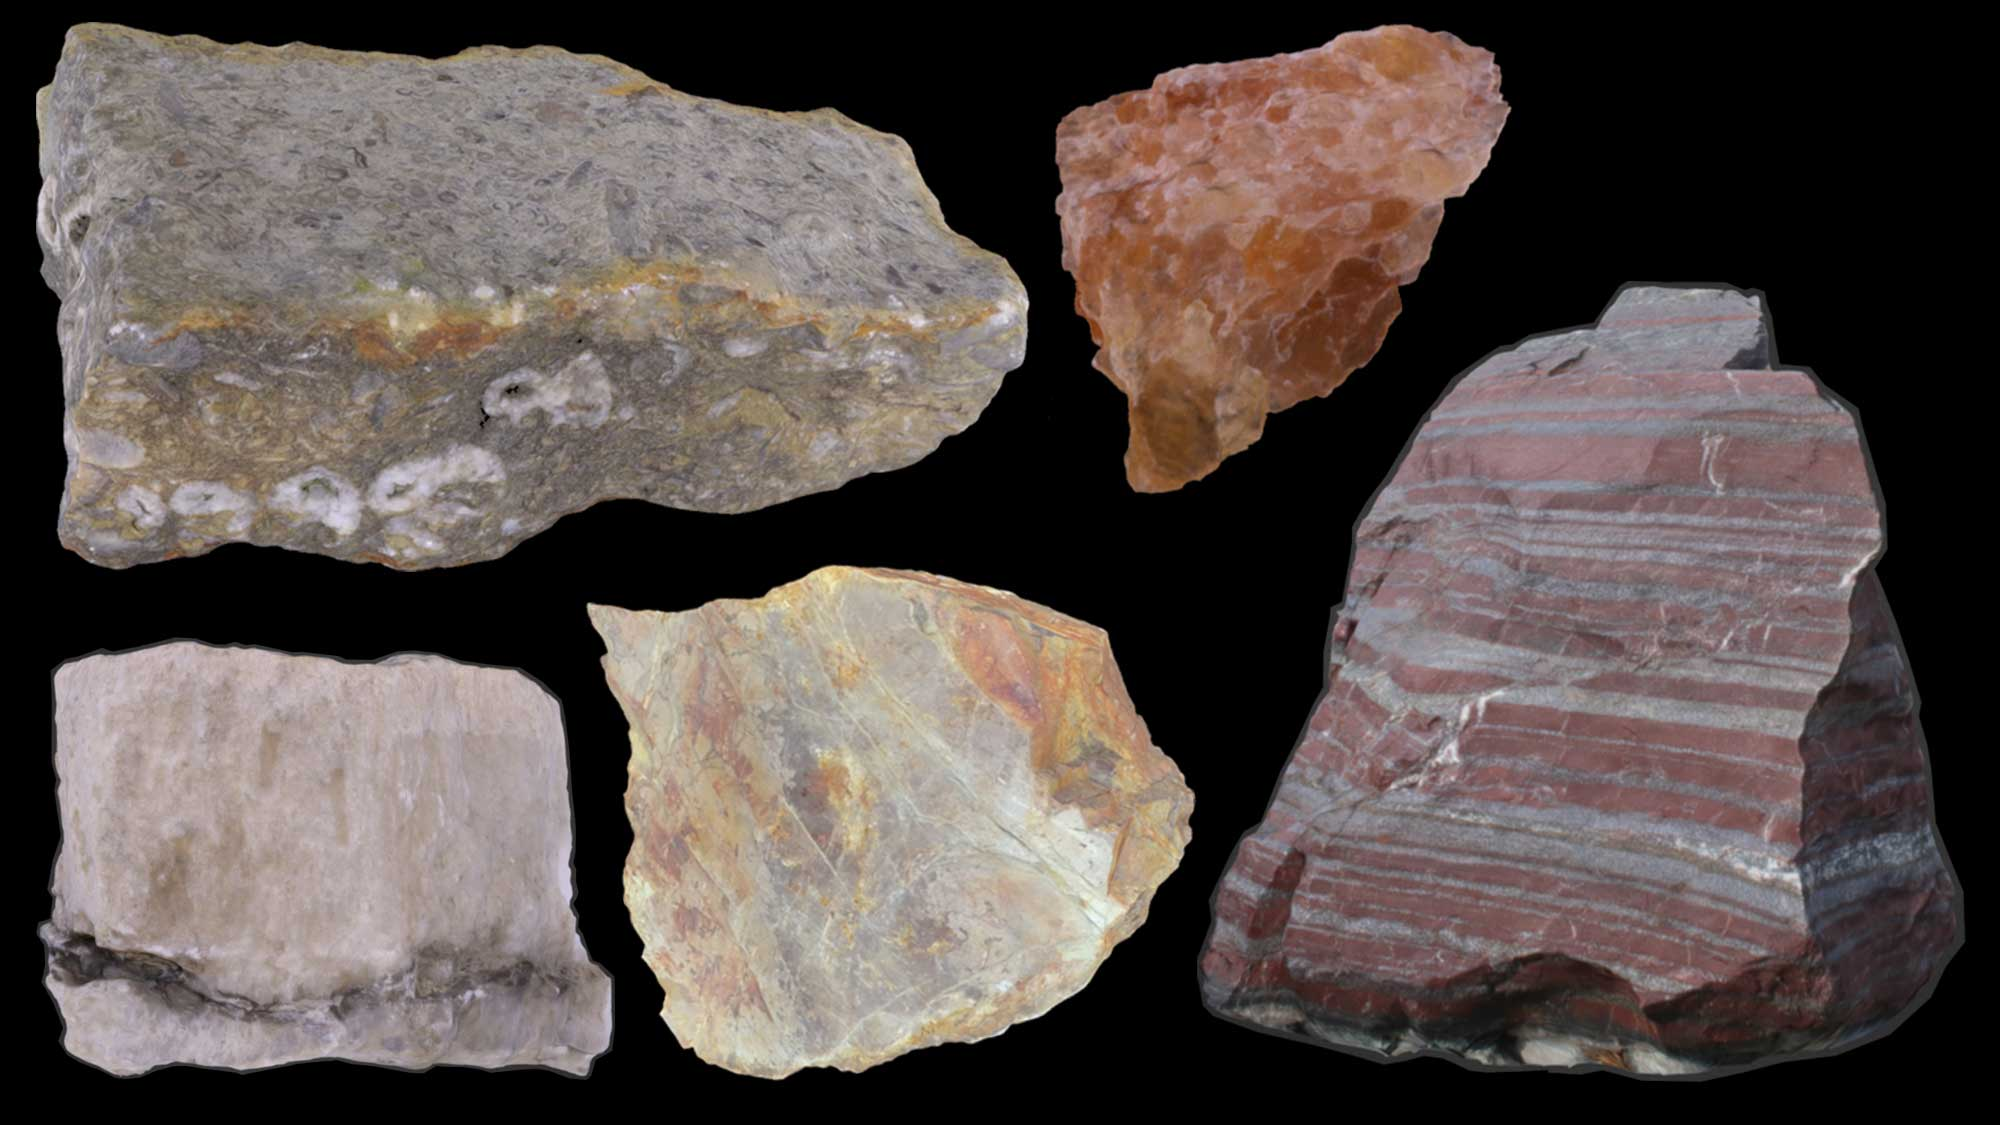 Image of various types of chemical and organic sedimentary rocks.